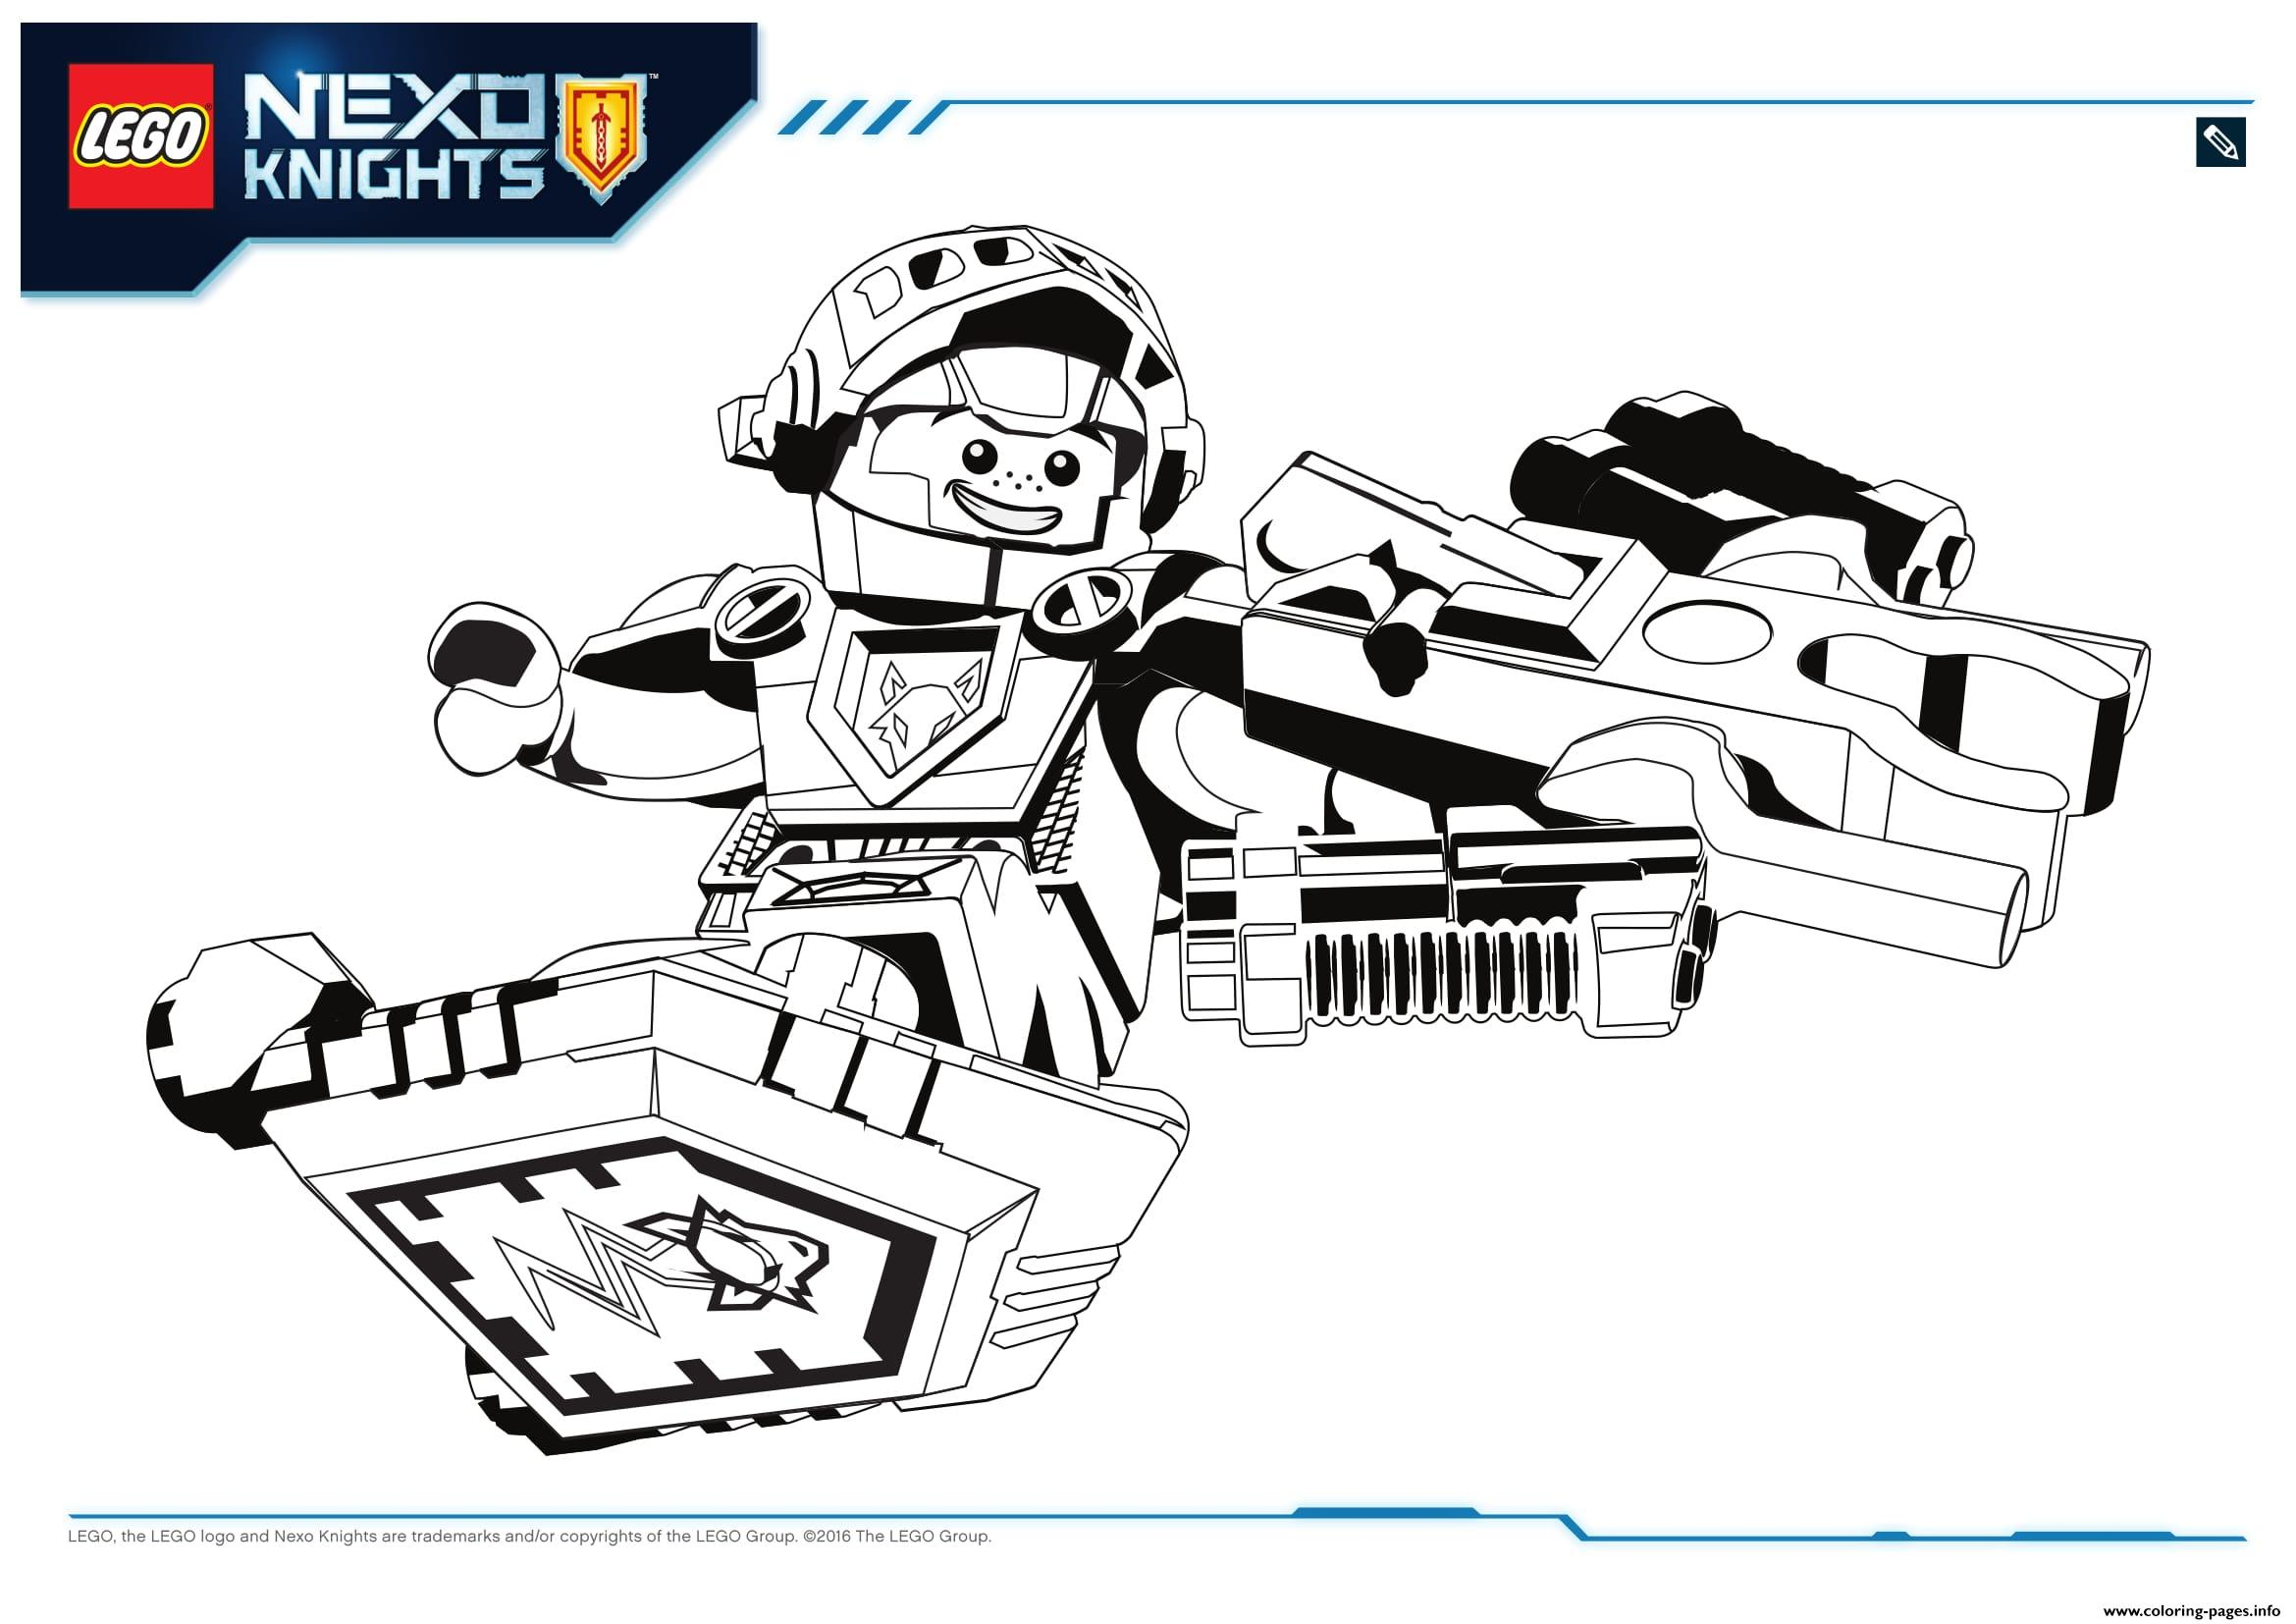 Nexo Knights Merlok Ausmalbilder : Nexo Knight Coloring Pages Lego Nexo Knights Coloring Pages Free